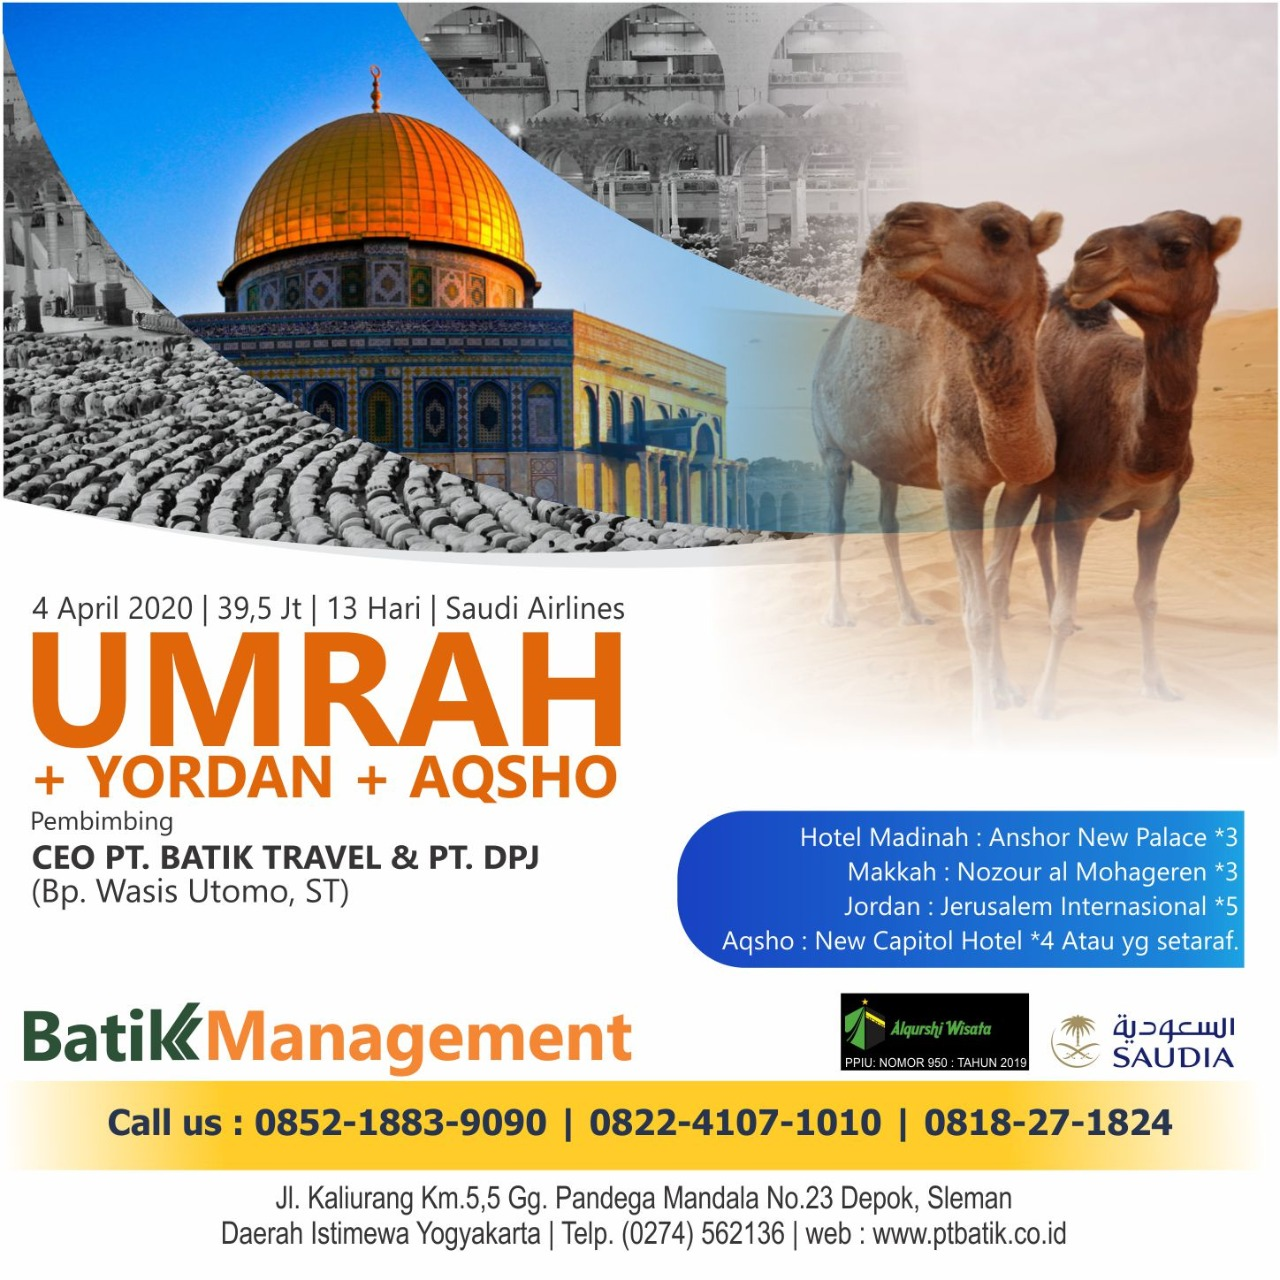 Umroh  PLUS Yordan PLUS Aqsho - 4 April 2020